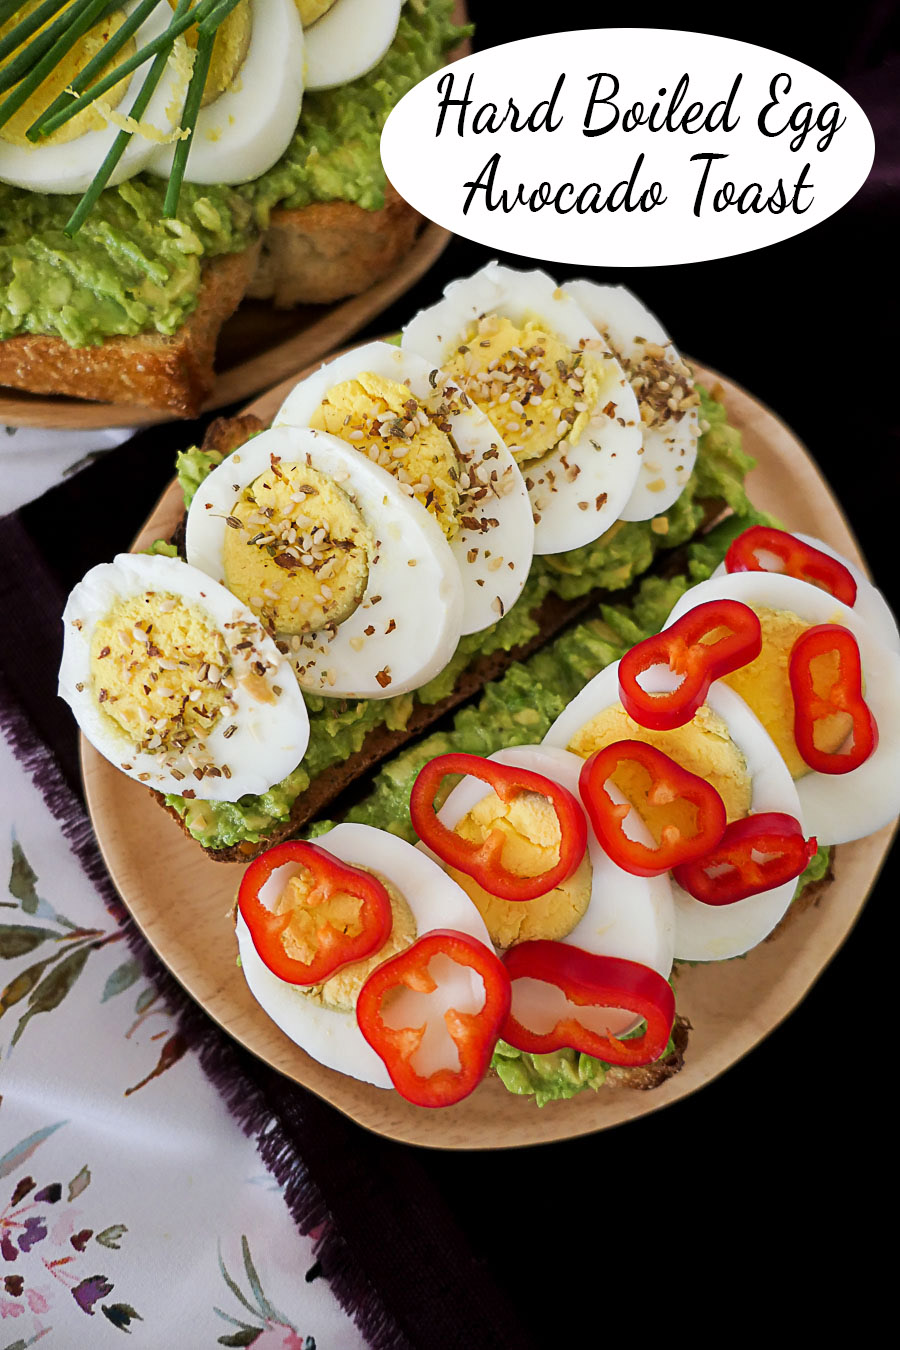 Hard Boiled Egg Breakfast Toast. These easy, make-ahead breakfast ideas are full of flavor, protein, and everything you want. Switch up these fun avocado toast toppings for extra crunch, veggies, and flavor ! #avocadotoast #breakfast #makeahead #vegetarian #lmreipces